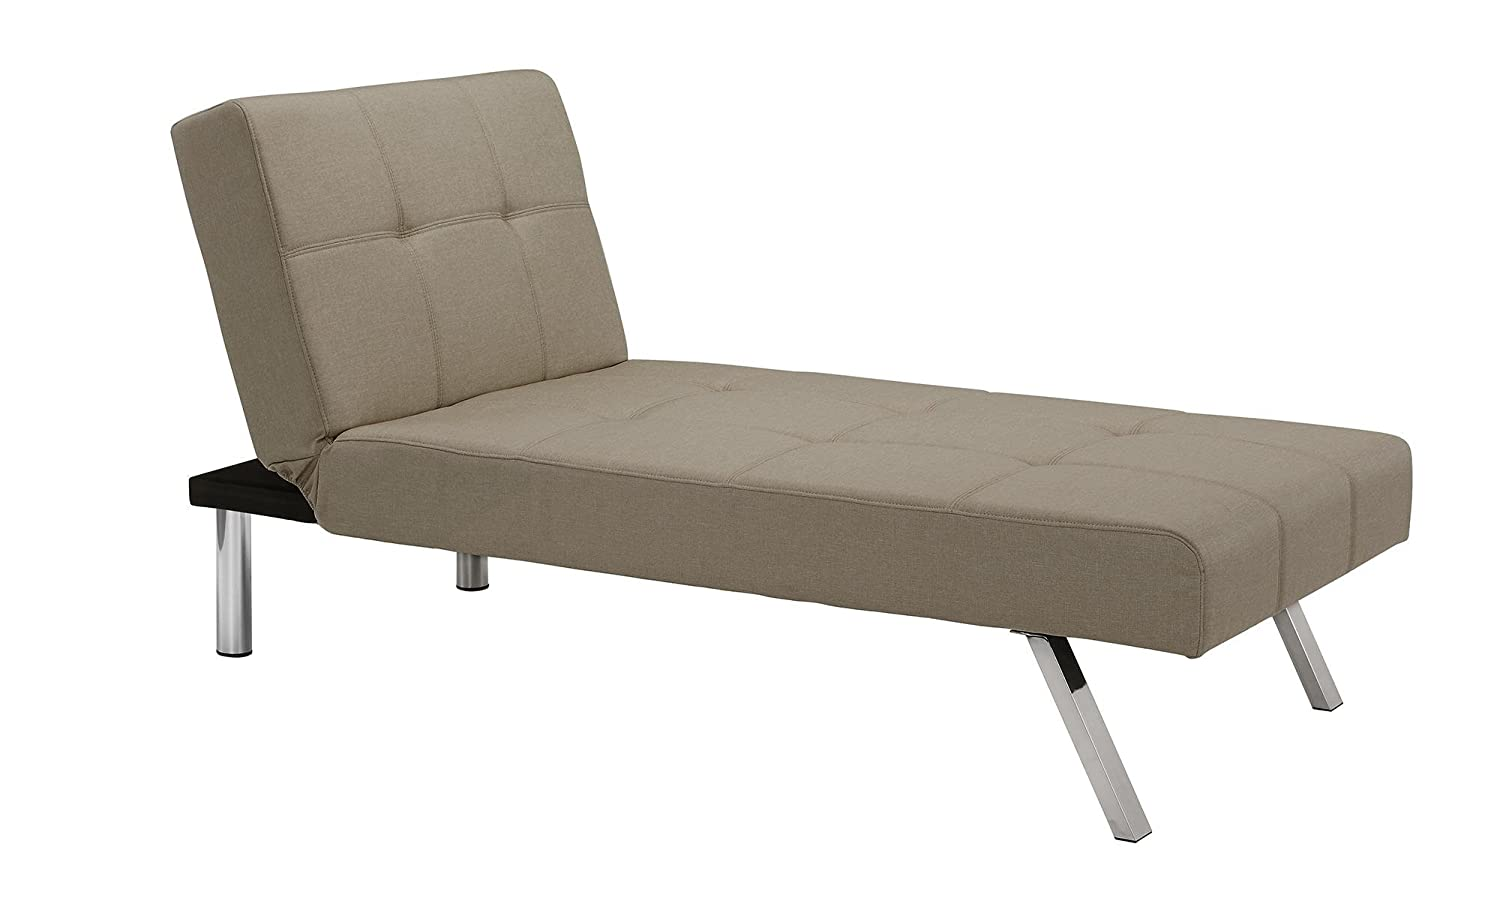 Novogratz Simon Chaise with Chrome Slanted Legs, Mid-Century Modern Design, Converts to Sleeper, Rich Marsala Linen 2102529